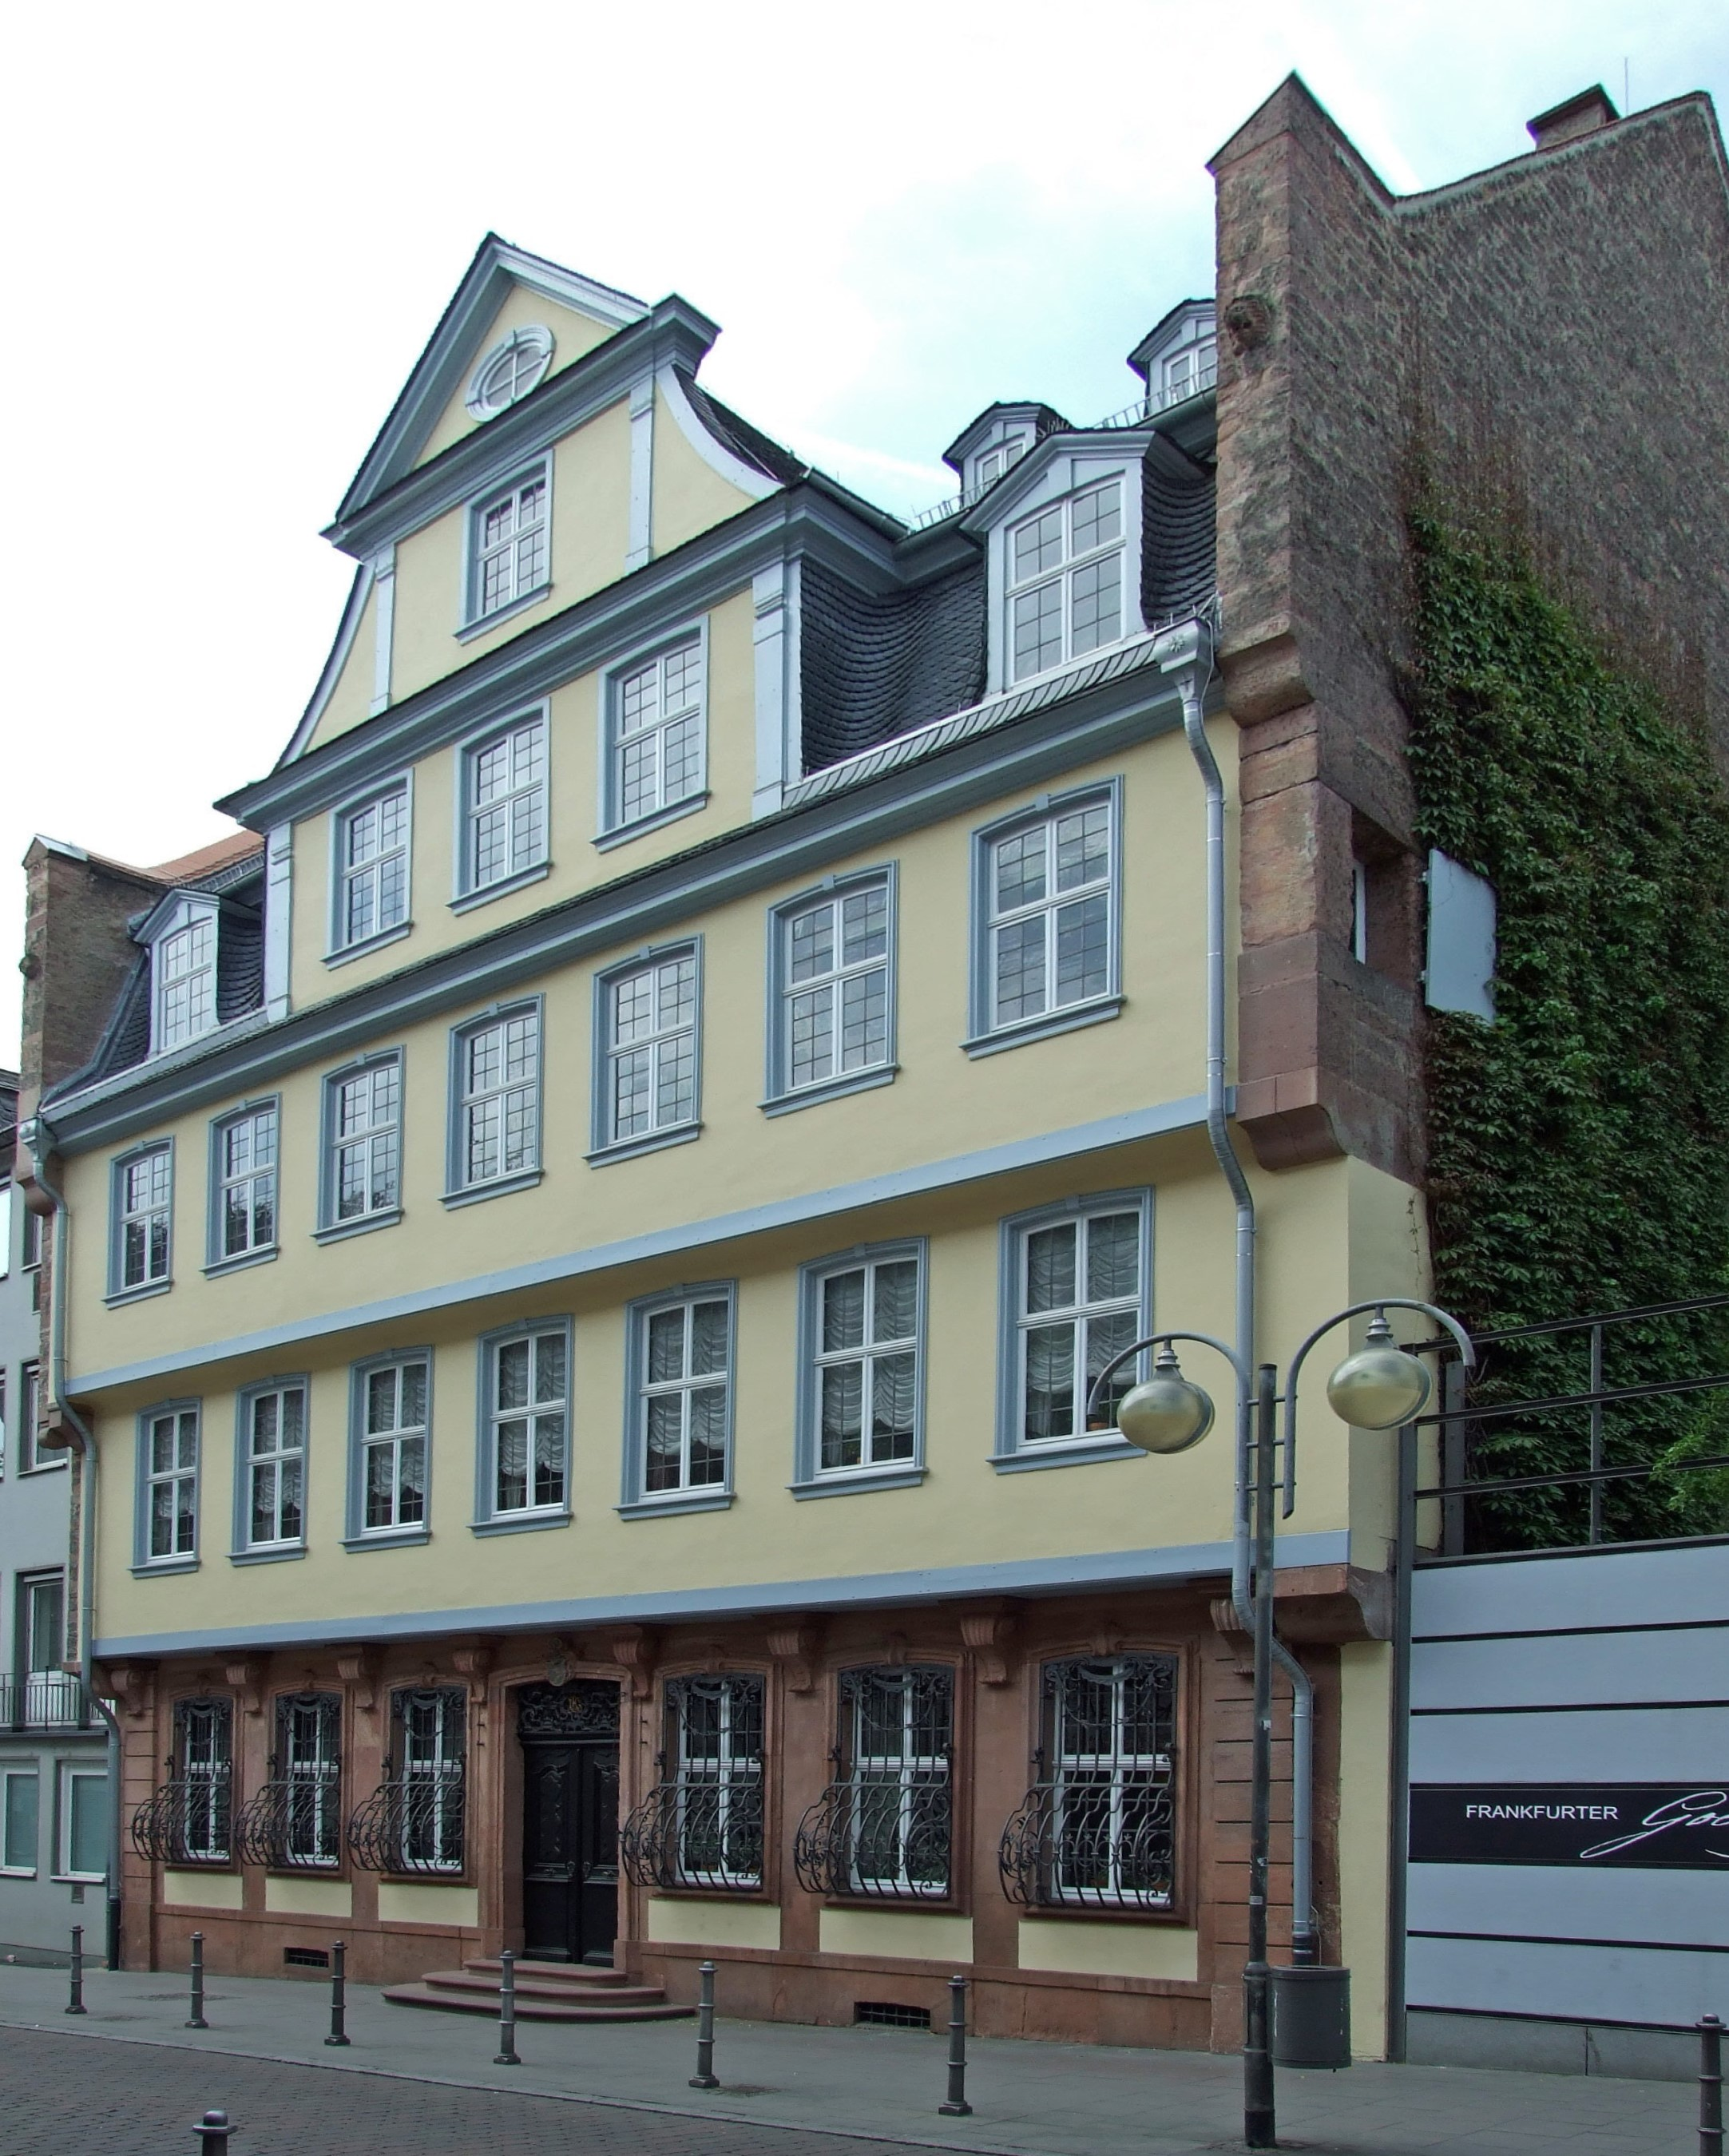 Goethe House in Frankfurt am Main